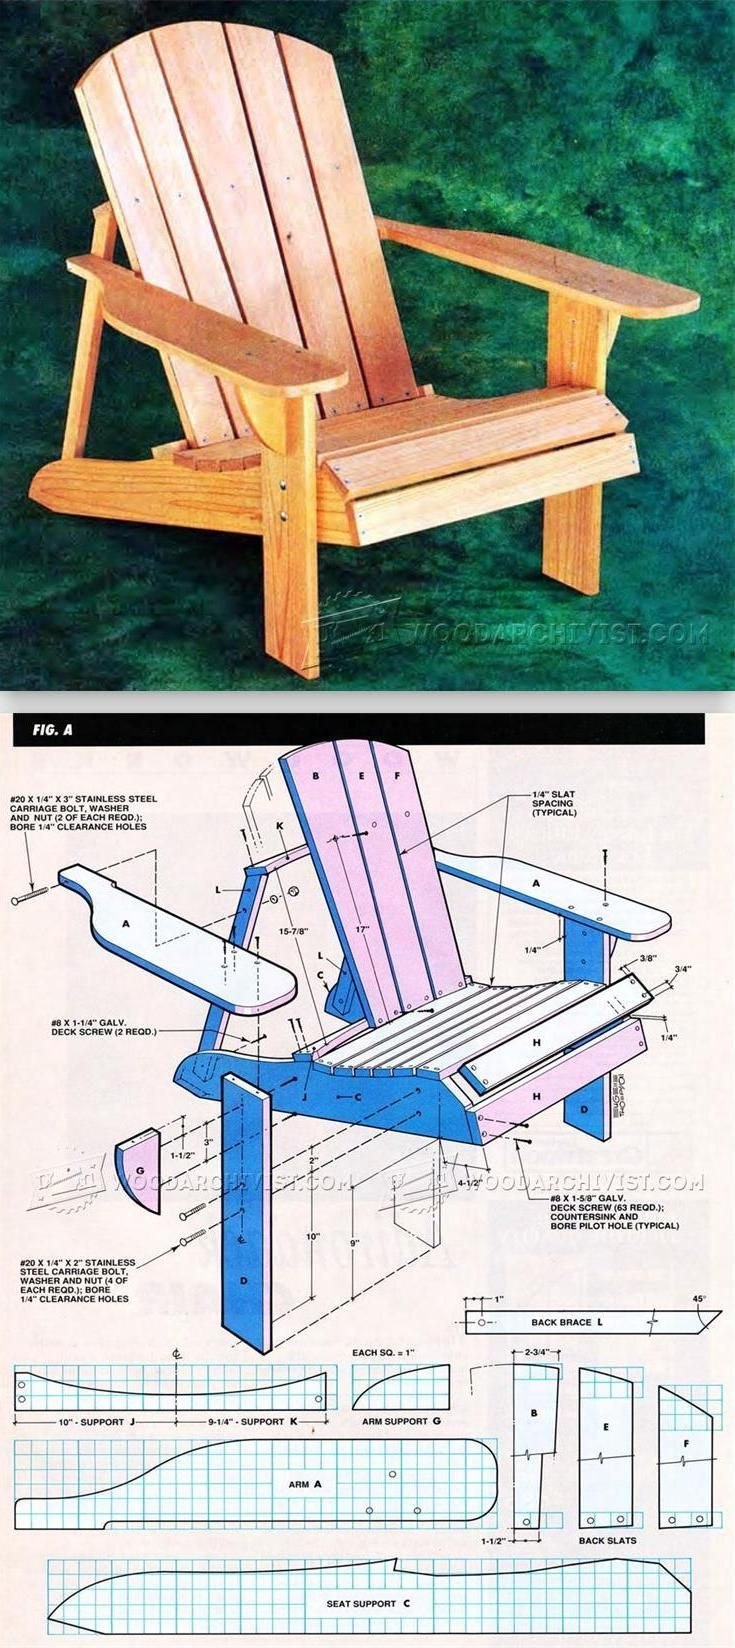 Classic Adirondack Chair Plans - Outdoor Furniture Plans and Projects   WoodArchivist.com